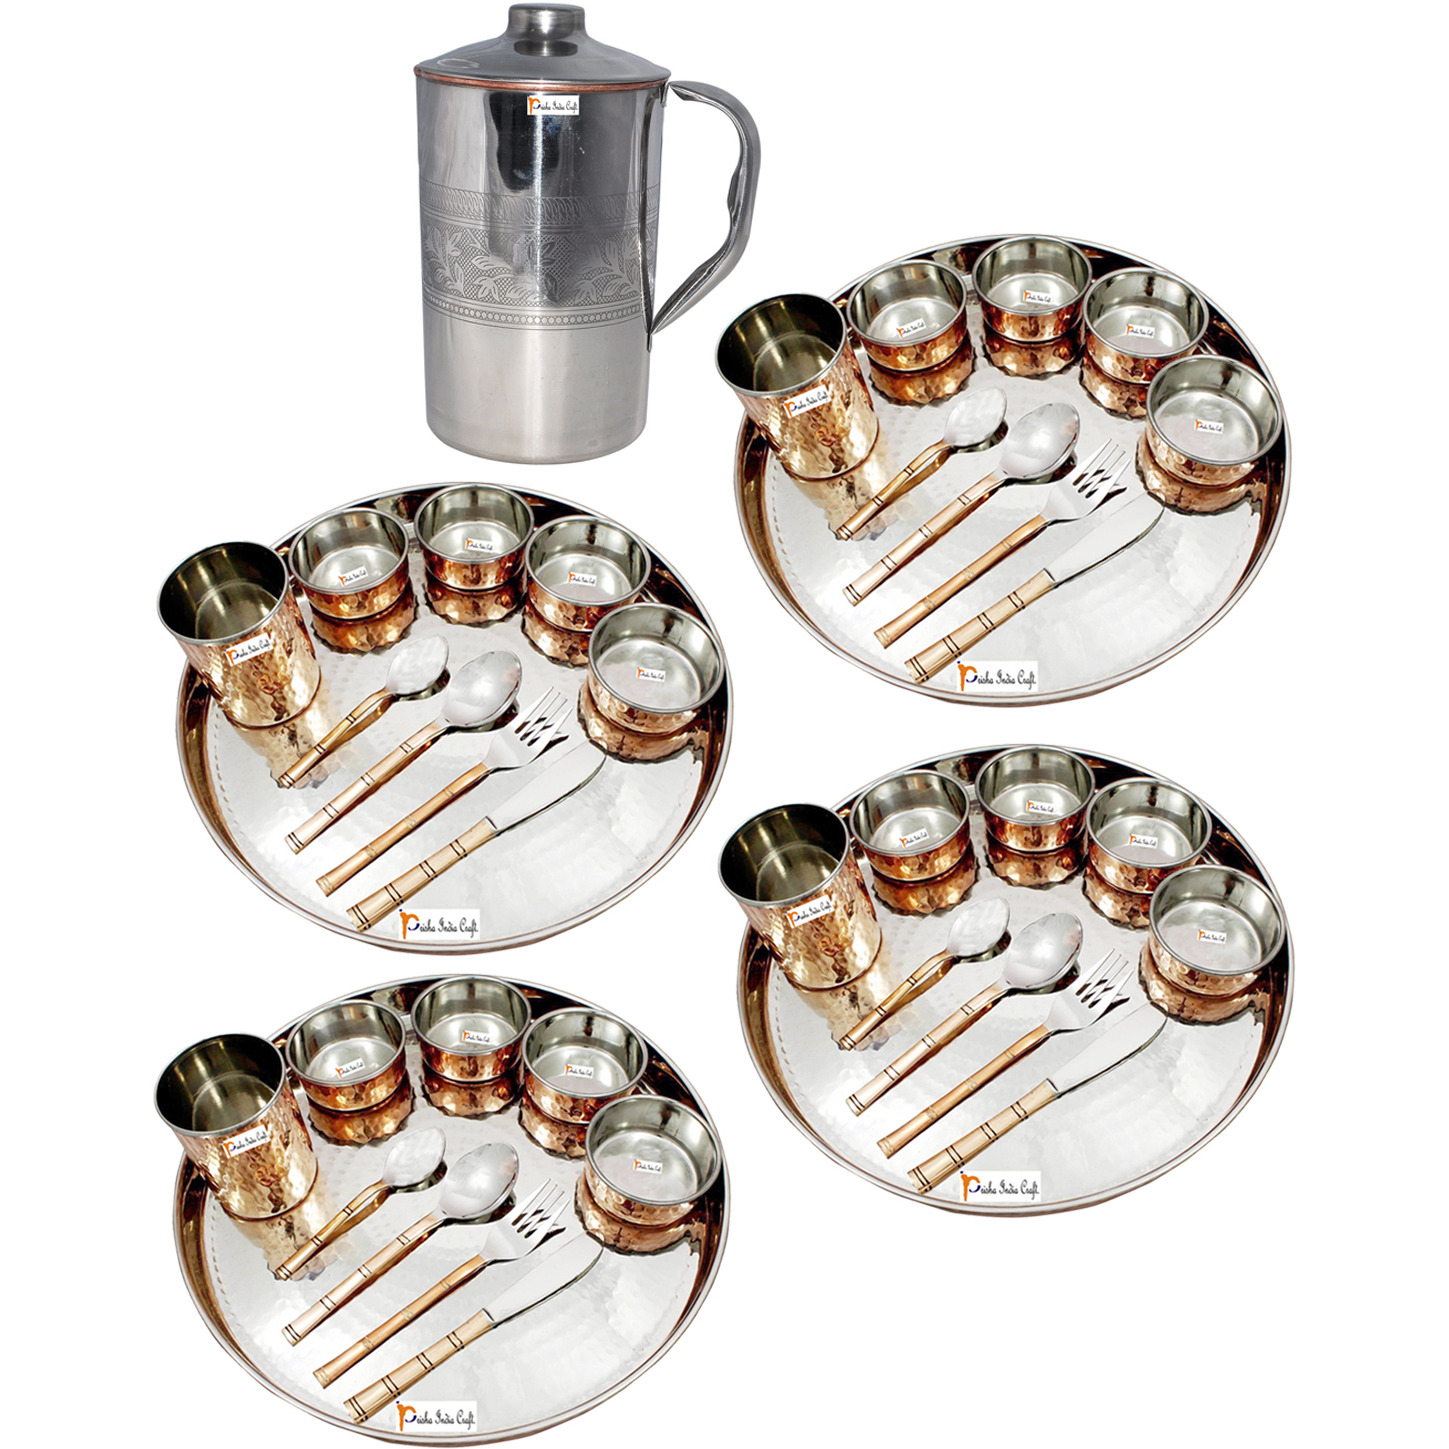 Prisha India Craft B. Set of 4 Dinnerware Traditional Stainless Steel Copper Dinner Set of Thali Plate, Bowls, Glass and Spoons, Dia 13  With 1 Embossed Stainless Steel Copper Pitcher Jug - Christmas Gift